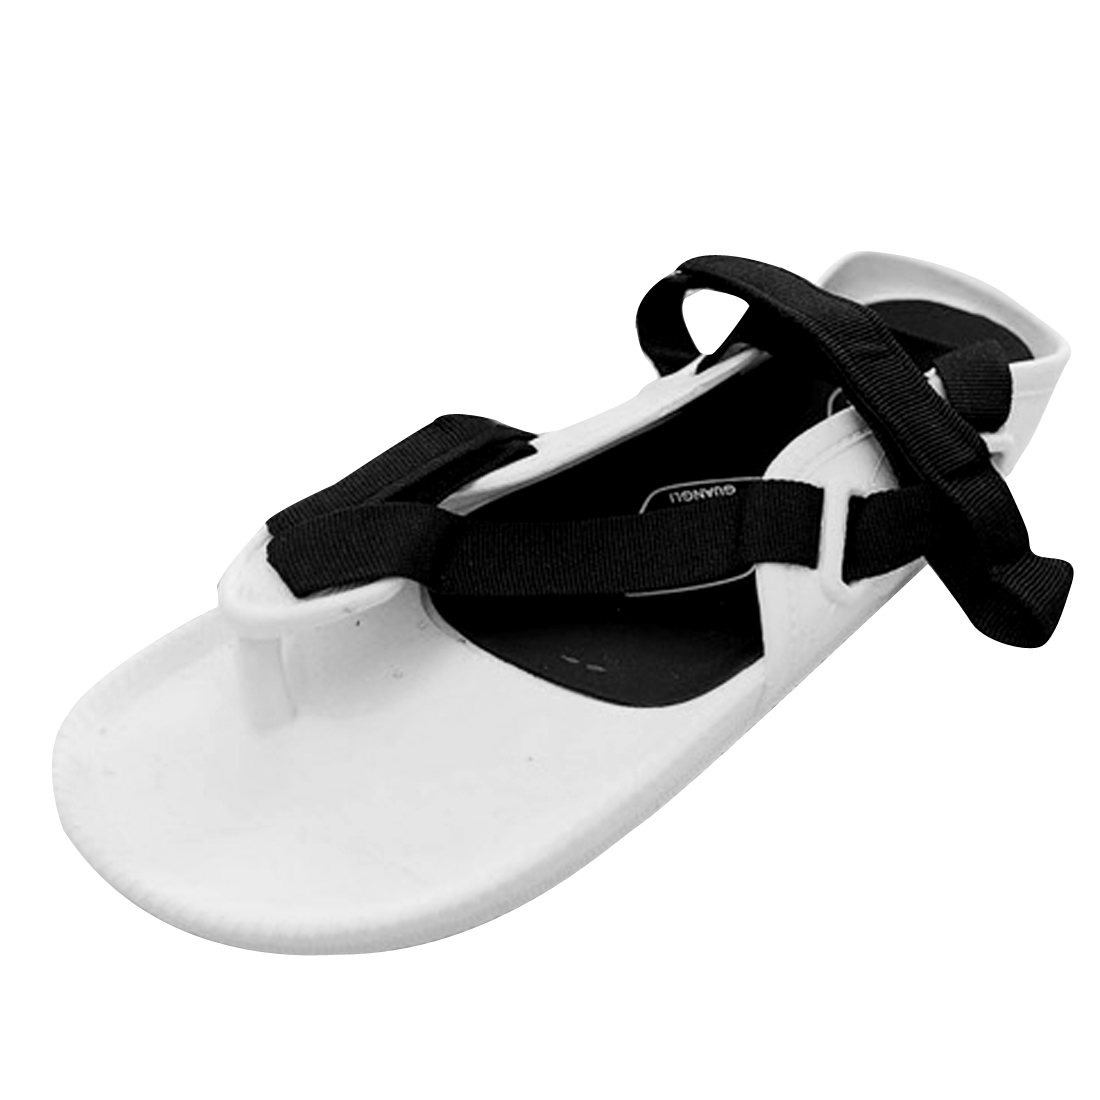 Men's Newly Hook and Loop Fastener Flip Flops White Black US Size 11